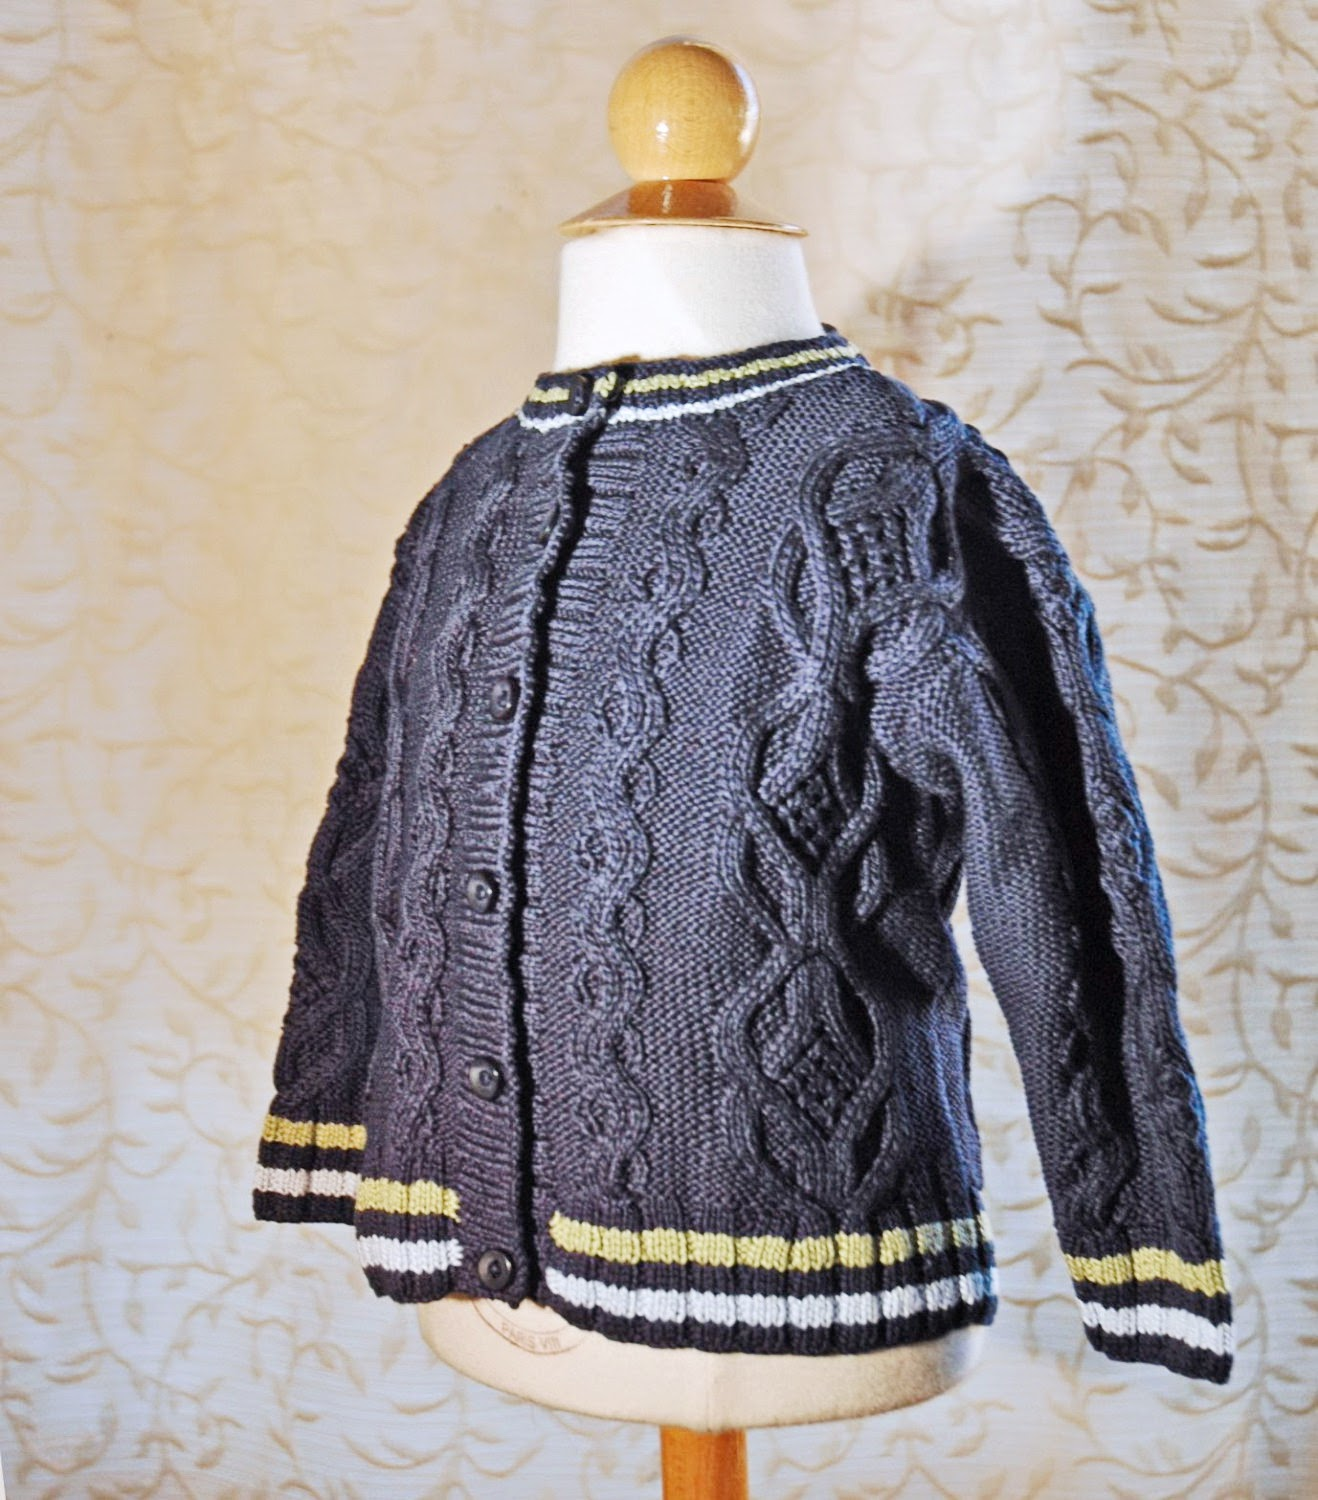 https://www.etsy.com/listing/186965844/baby-boy-cardigan-handknit-baby-navy?ref=related-0